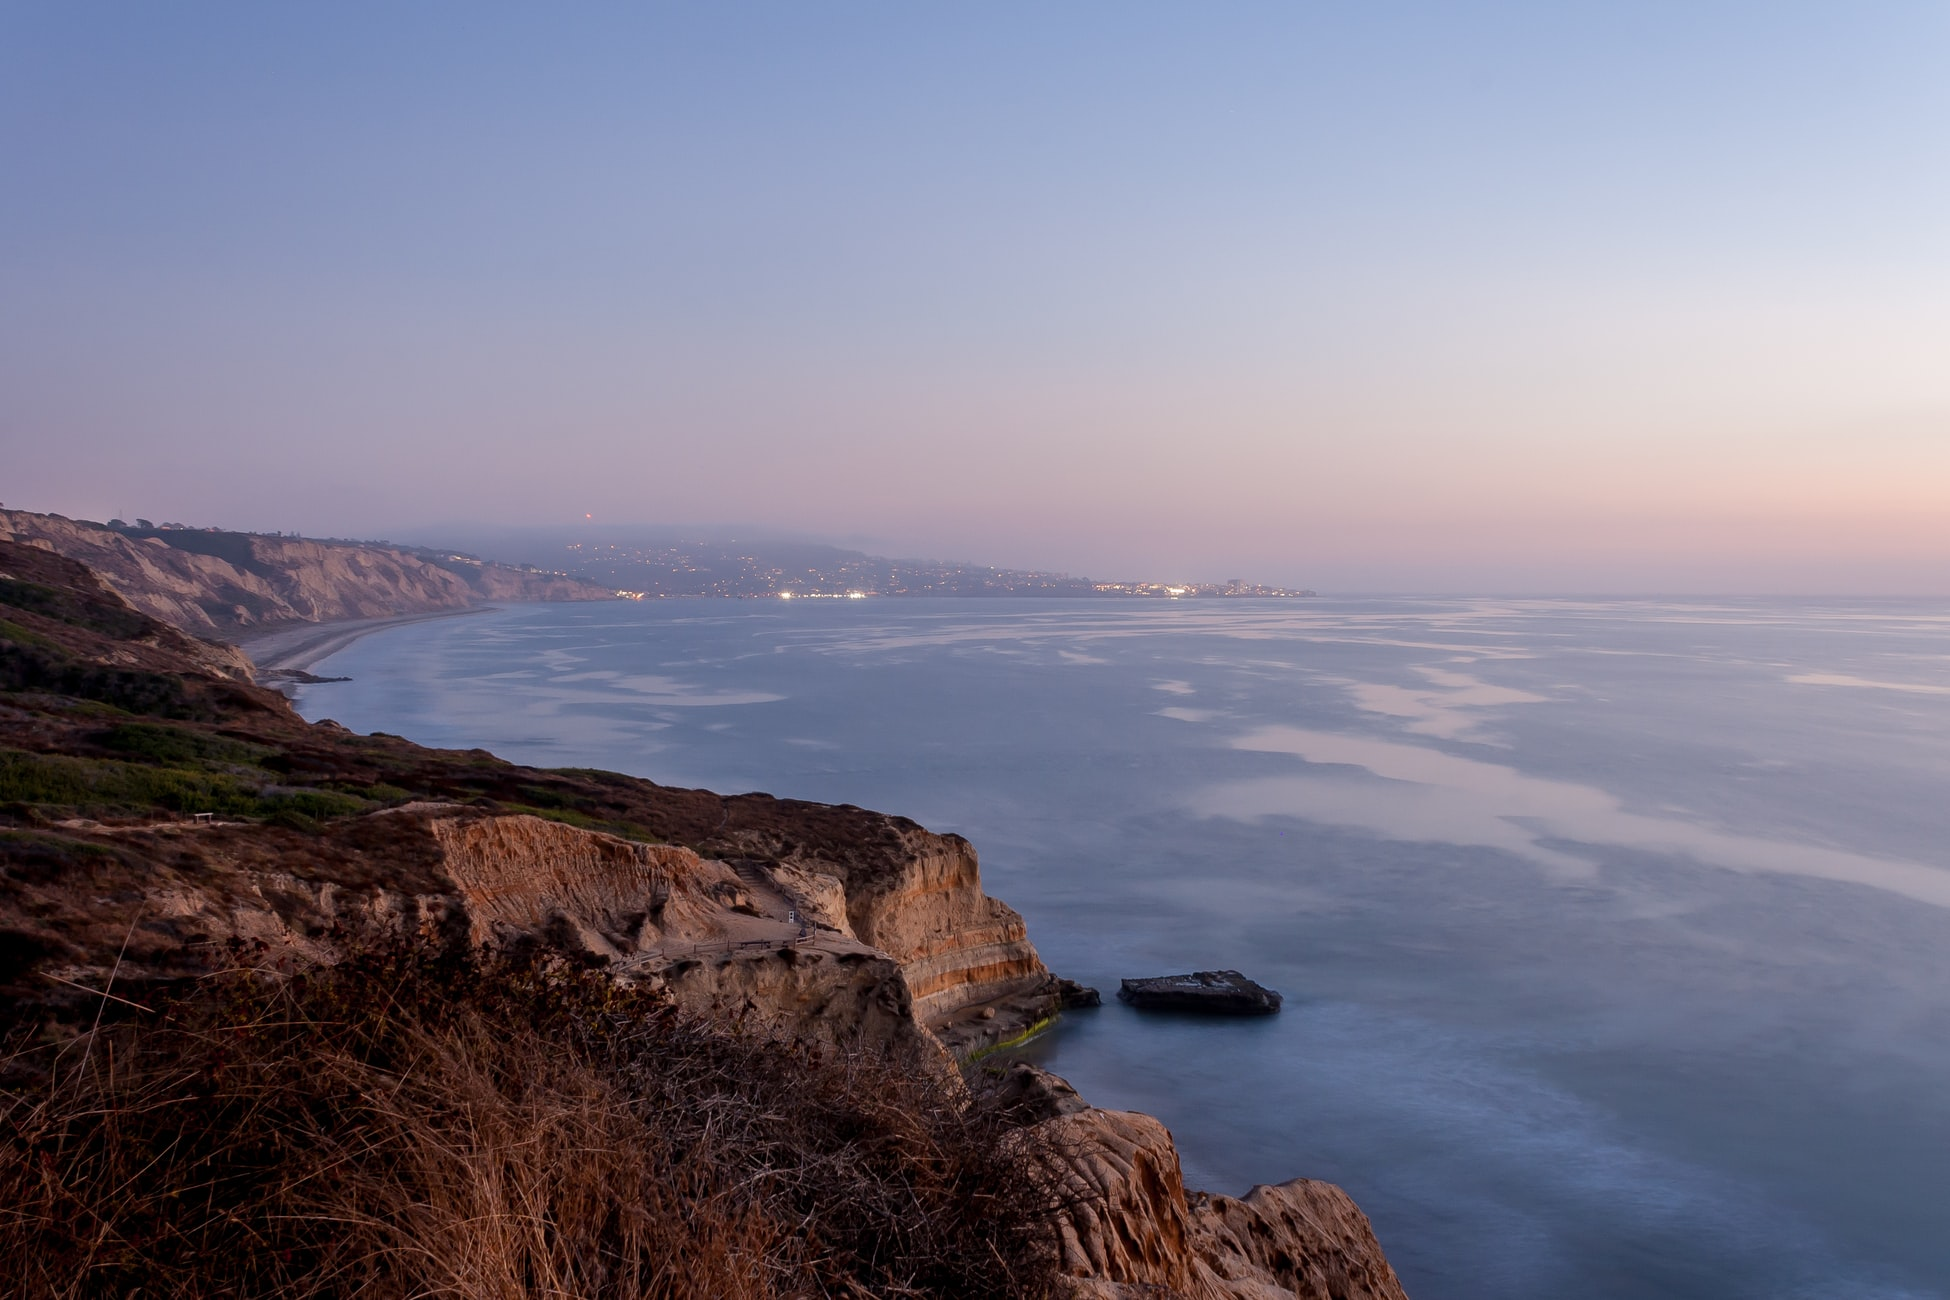 Torrey Pines Reserve - Photo by James McCullough on Unsplash